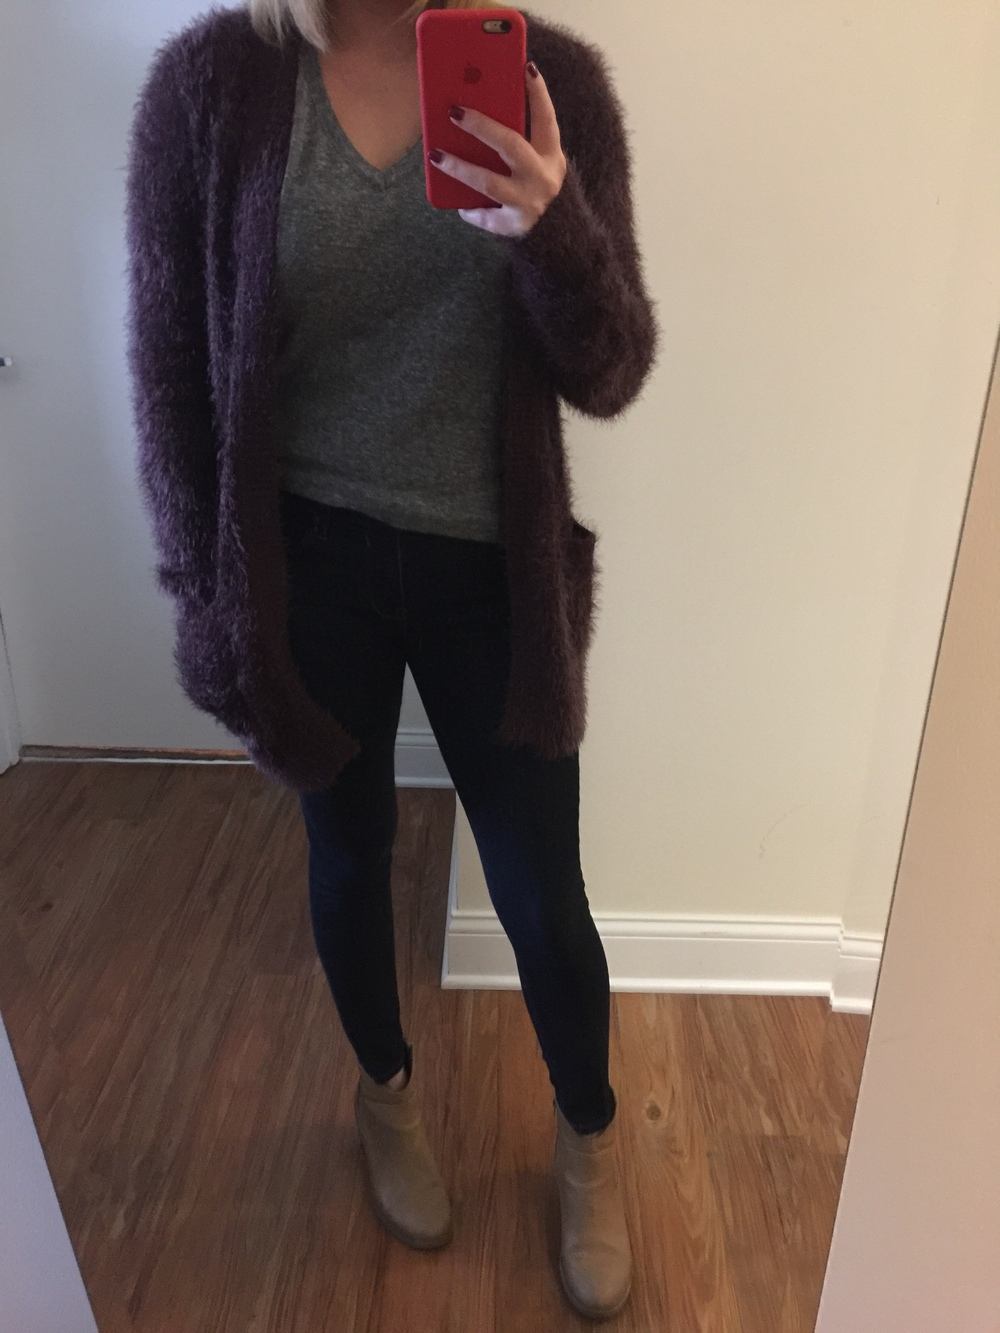 Sweater: Urban Outfitters, T-shirt: Urban Outfitters, Jeans:  Solid Dark Mid Rise Jean Legging ,Boots: Old Navy